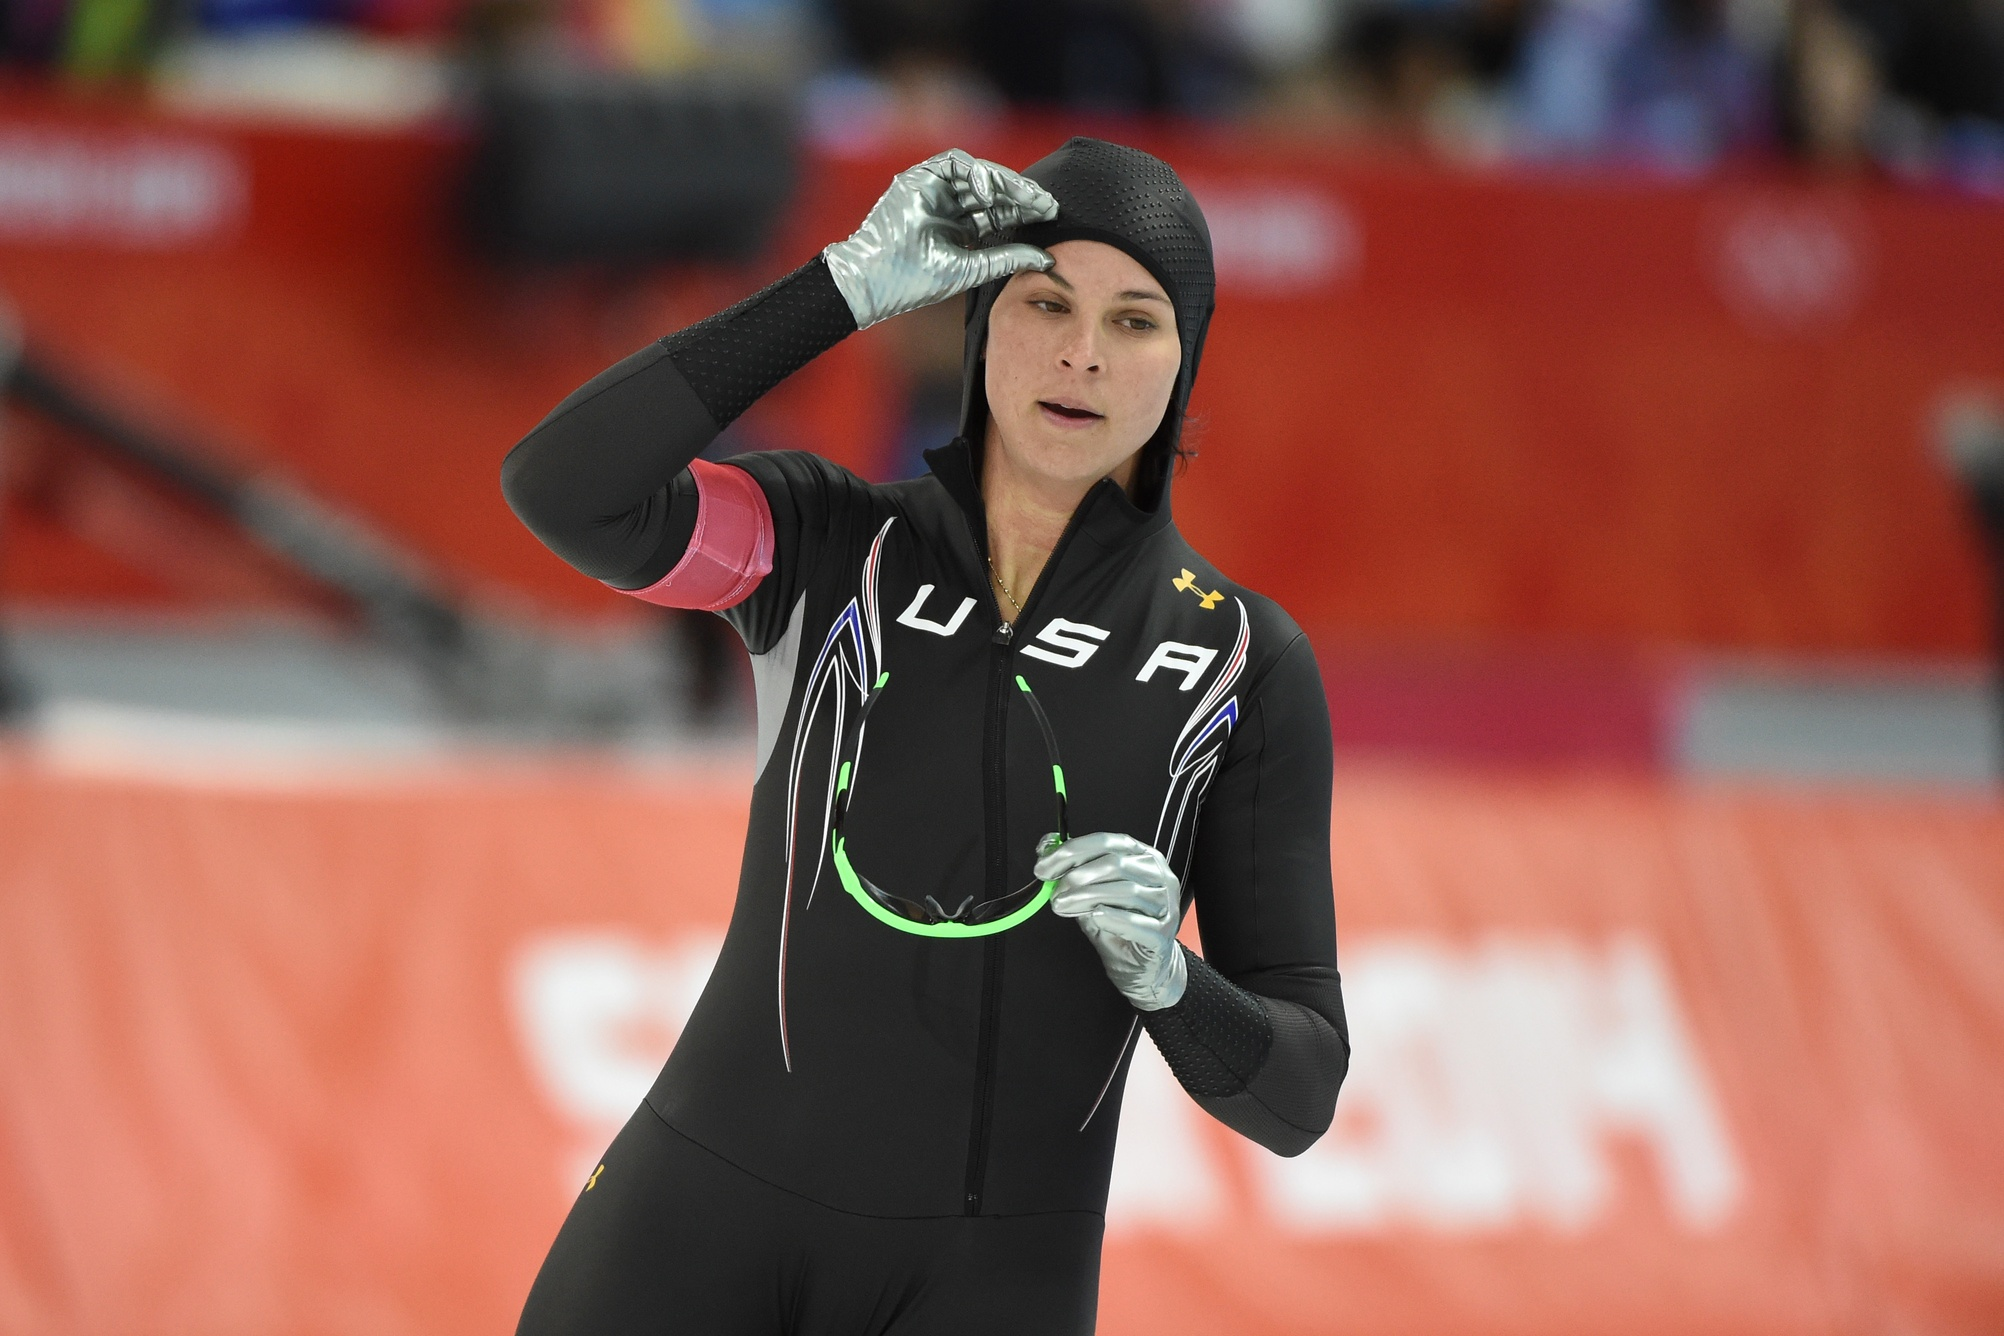 Was Brittany Bowe's suit to blame for her eighth-place finish in the 1000 meters? (USATSI)